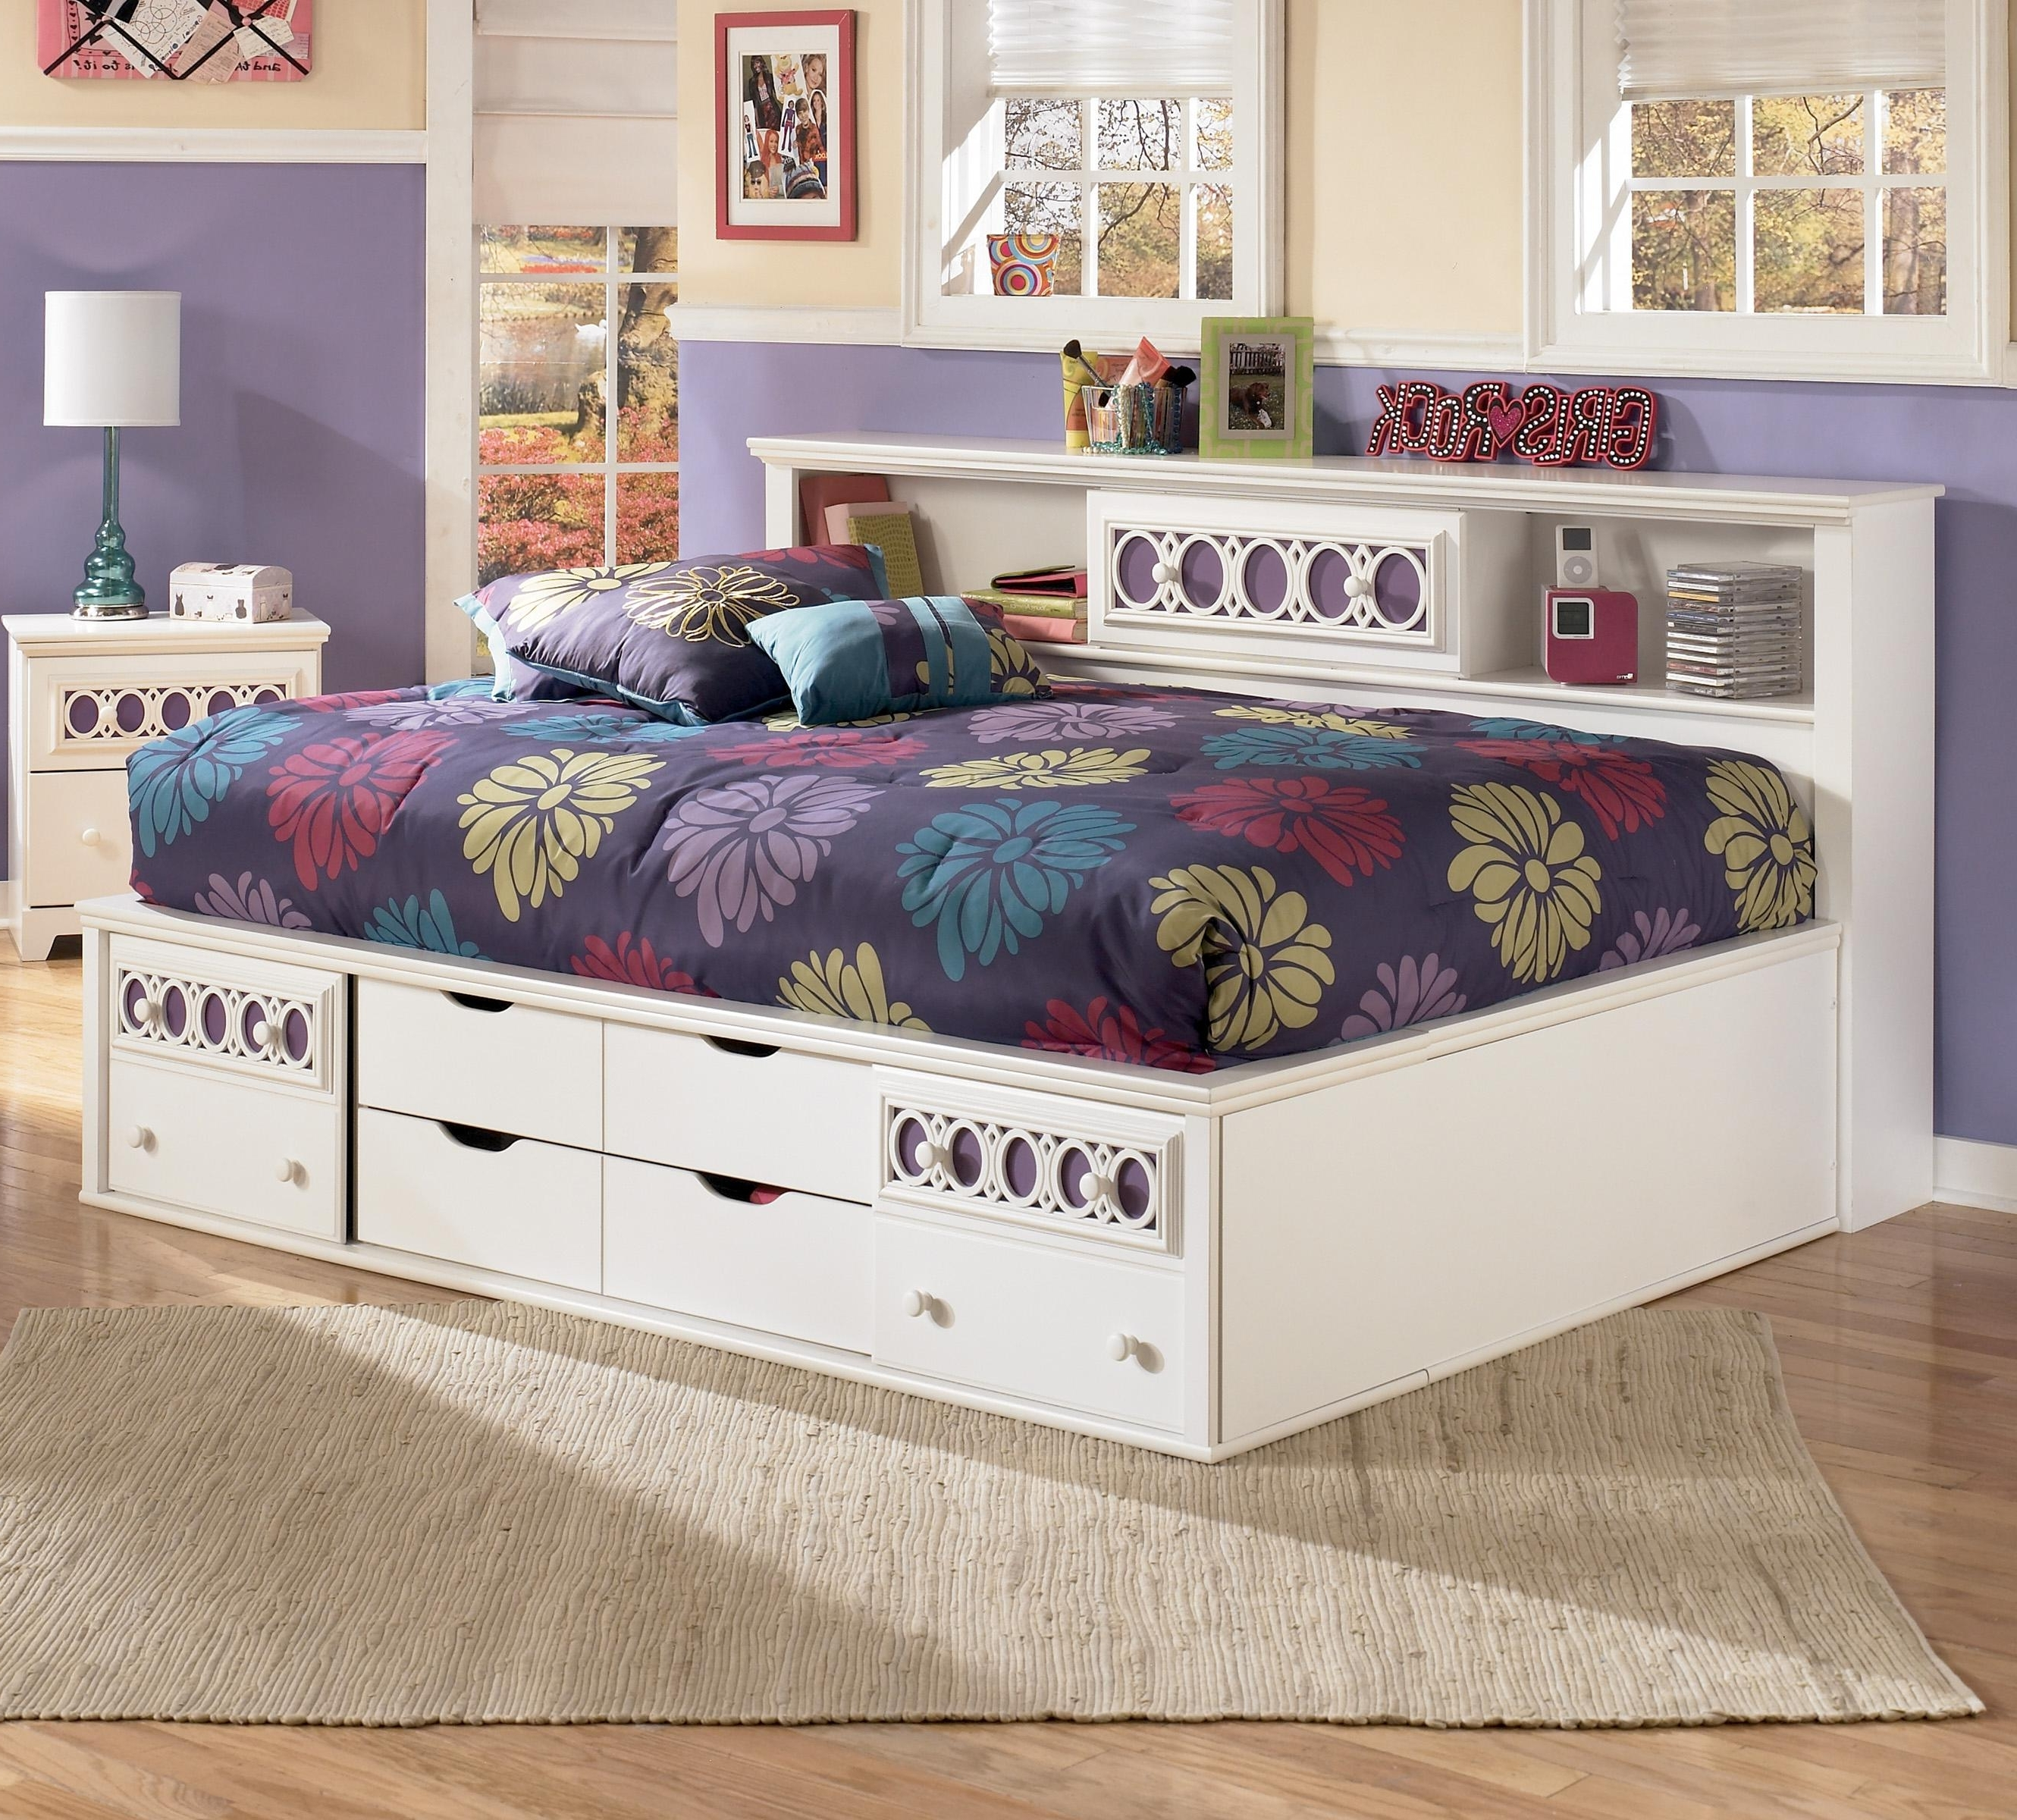 Full Bedside Bookcase Daybed With Customizable Color Panels Intended For Newest Daybed Bookcases (View 13 of 15)